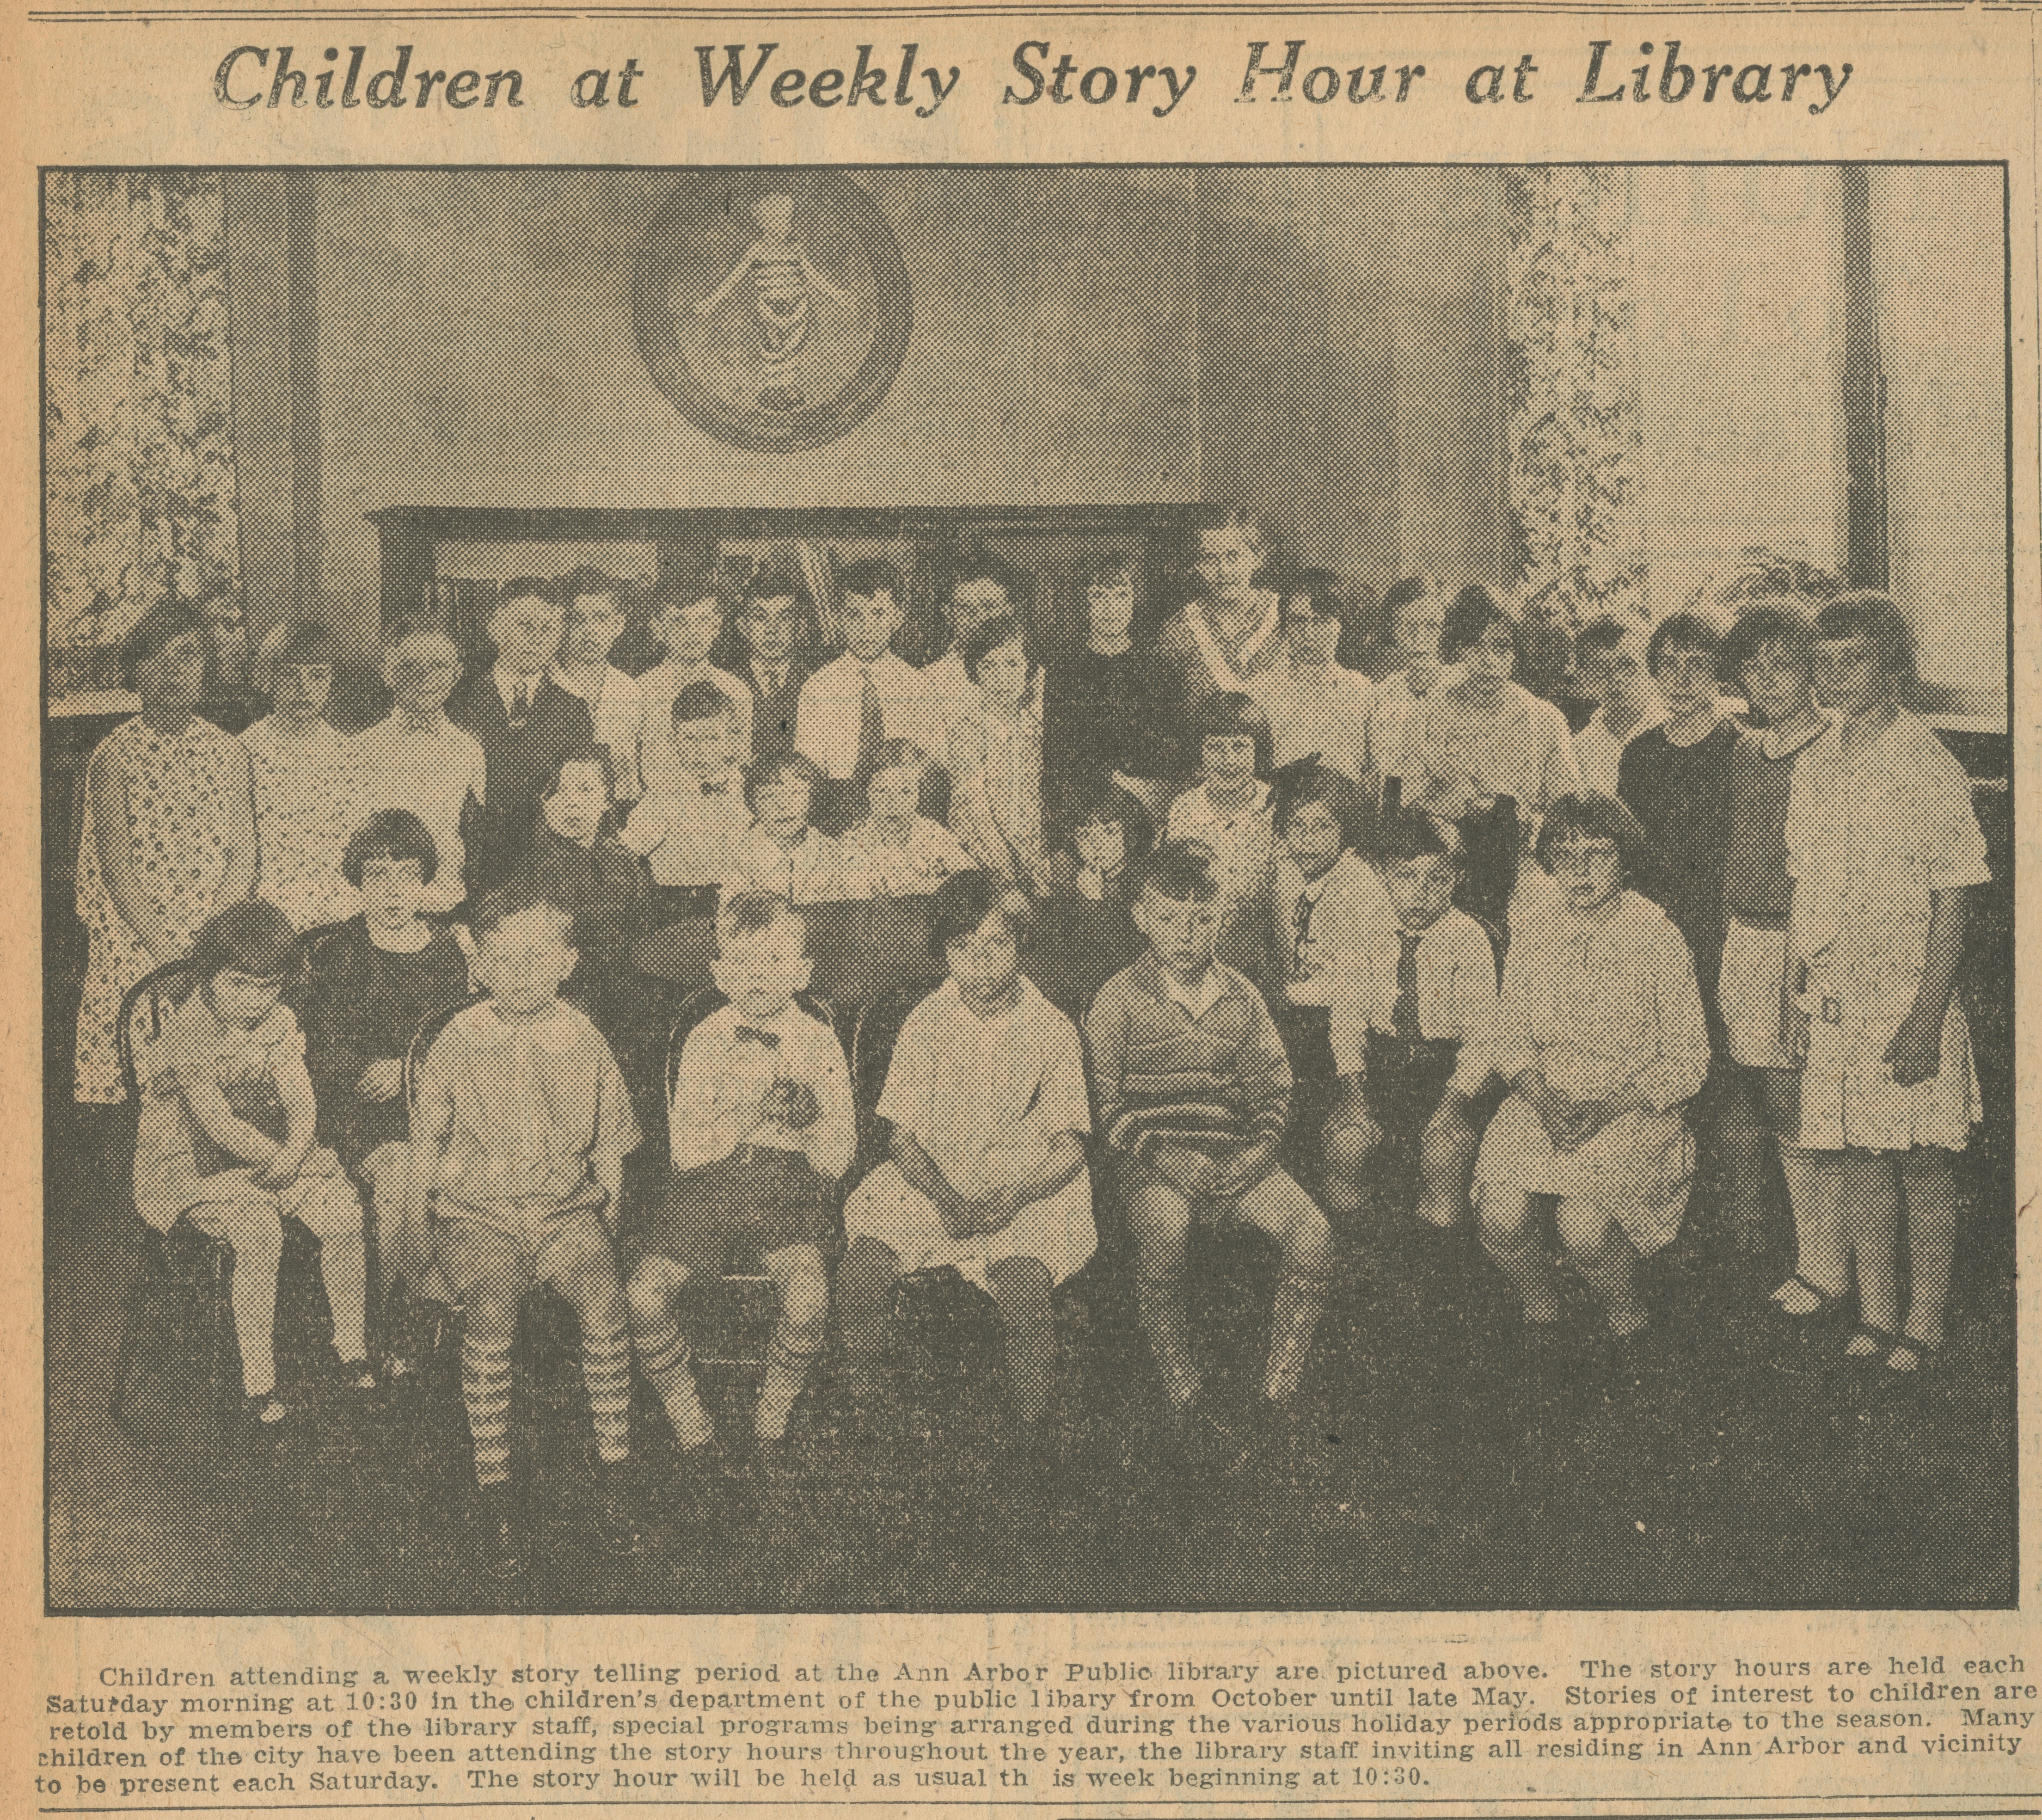 Children at Weekly Story Hour at Library image